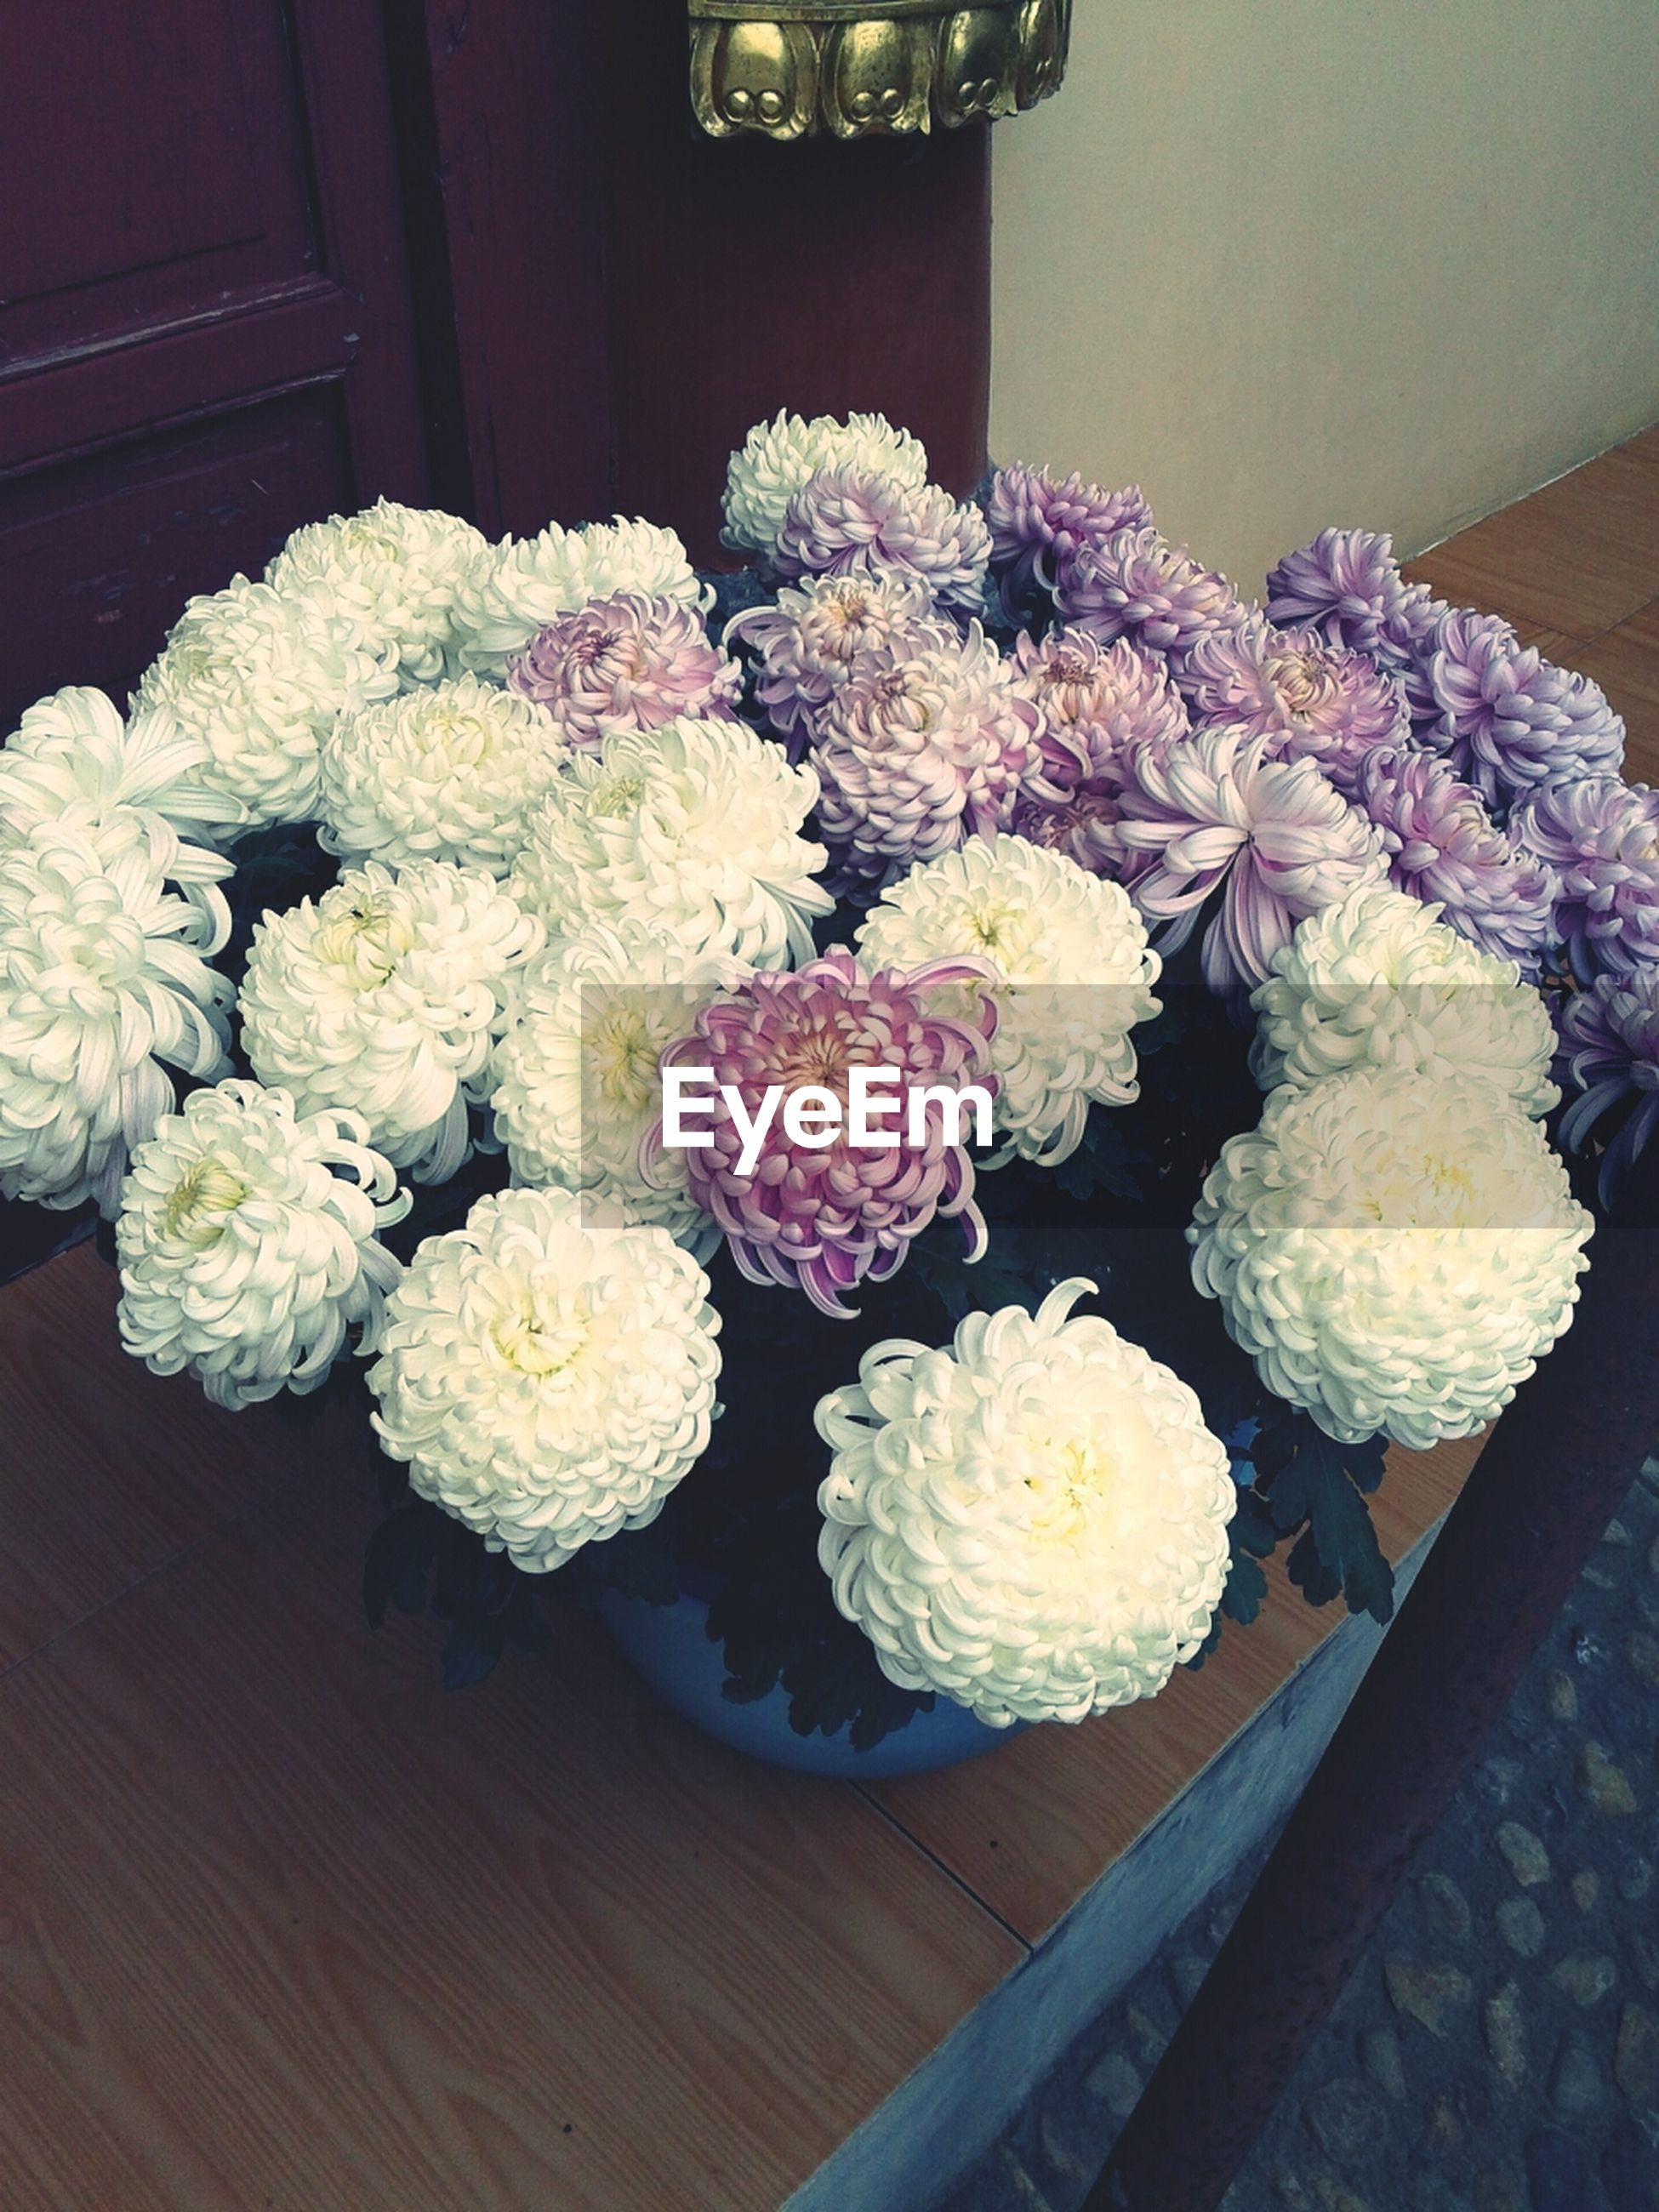 flower, freshness, indoors, fragility, bunch of flowers, beauty in nature, bouquet, petal, nature, growth, plant, vase, abundance, flower head, variation, arrangement, close-up, no people, high angle view, decoration